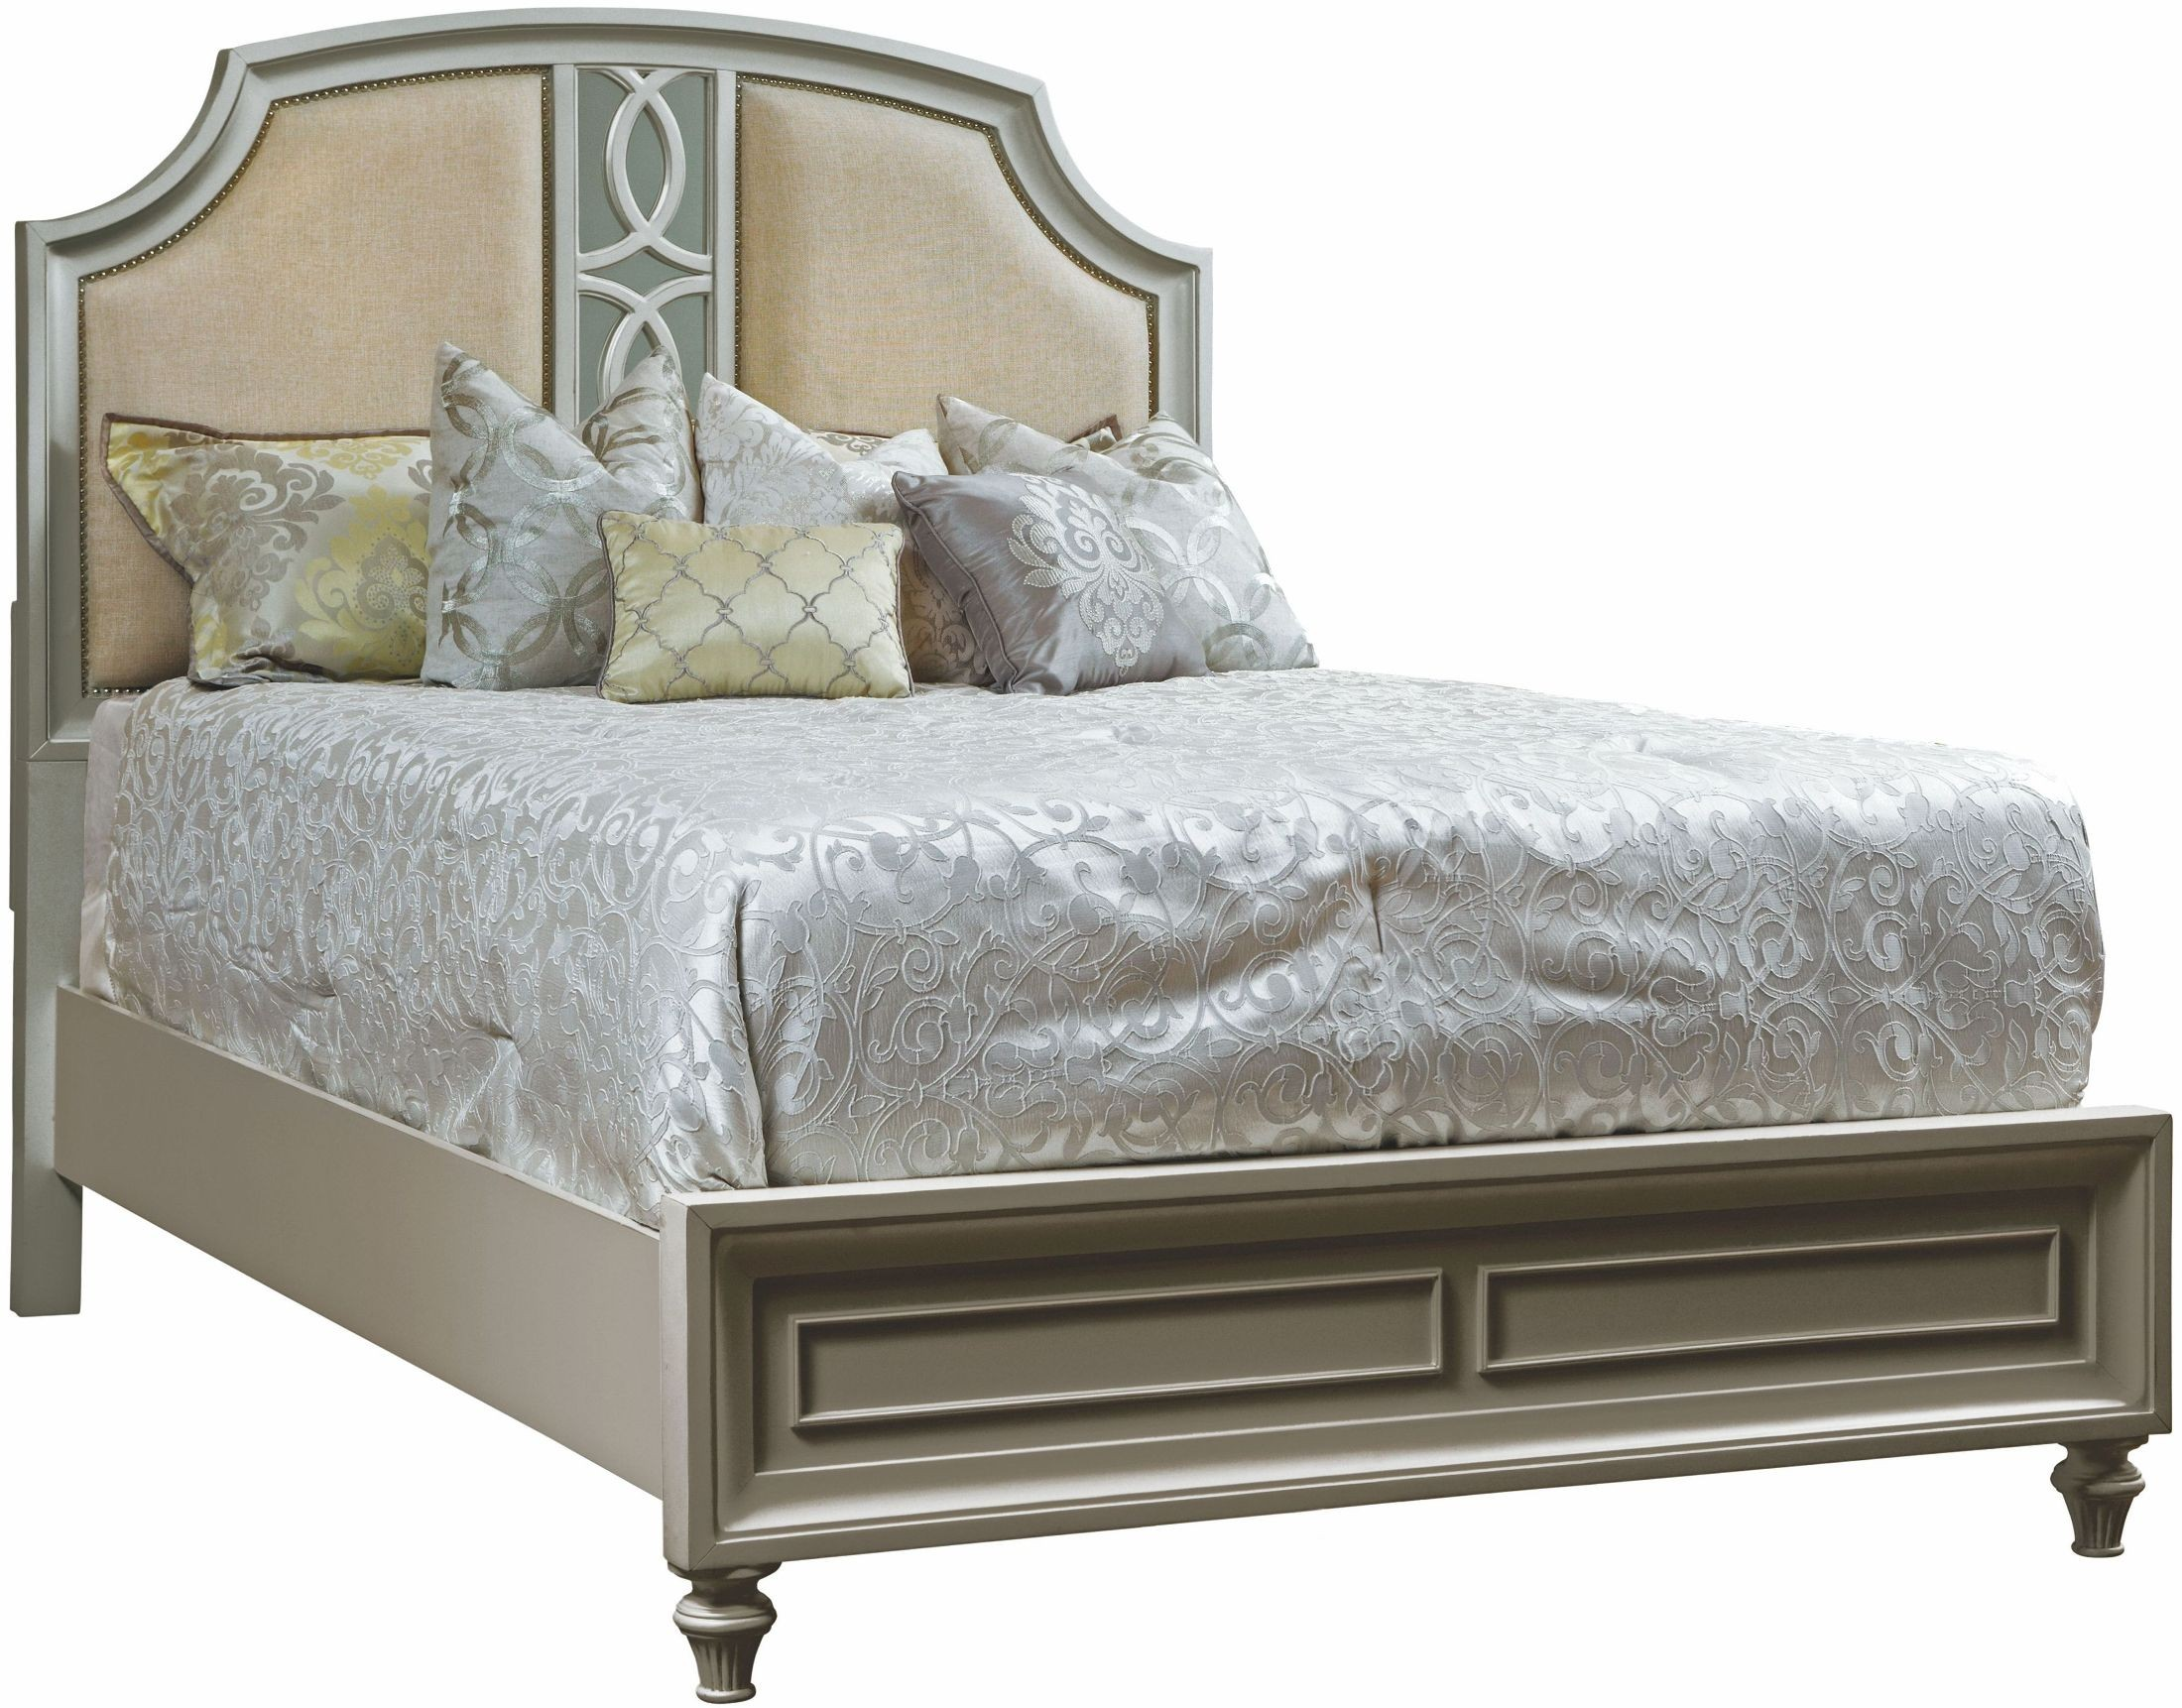 Regency Park Pearlized Silver Panel Bedroom Set. By Avalon Furniture